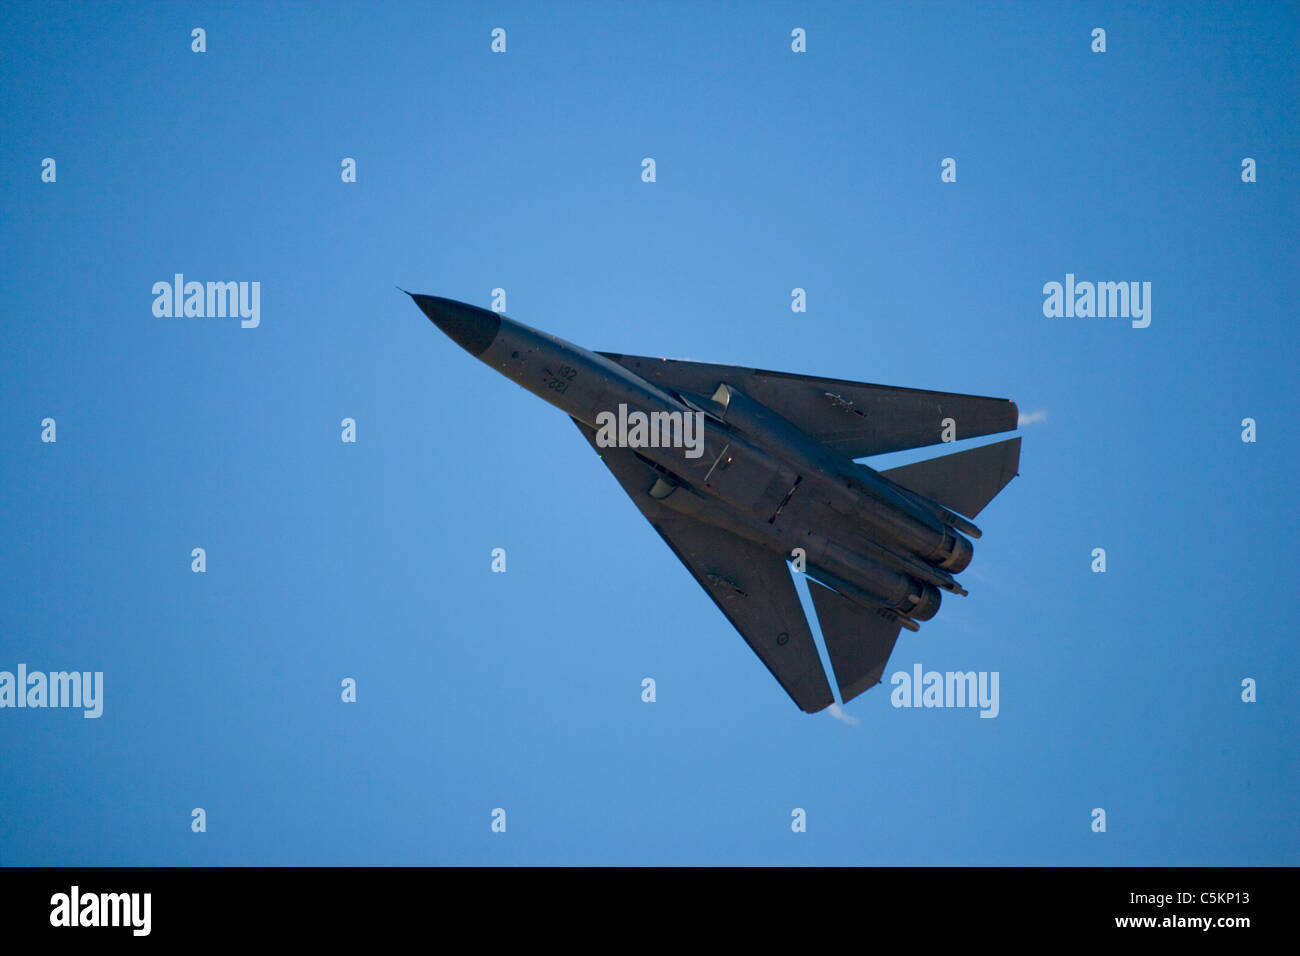 General Dynamics F-111 jet fighter aircraft of Royal Australian Air Force from below, flying at speed with wings - Stock Image